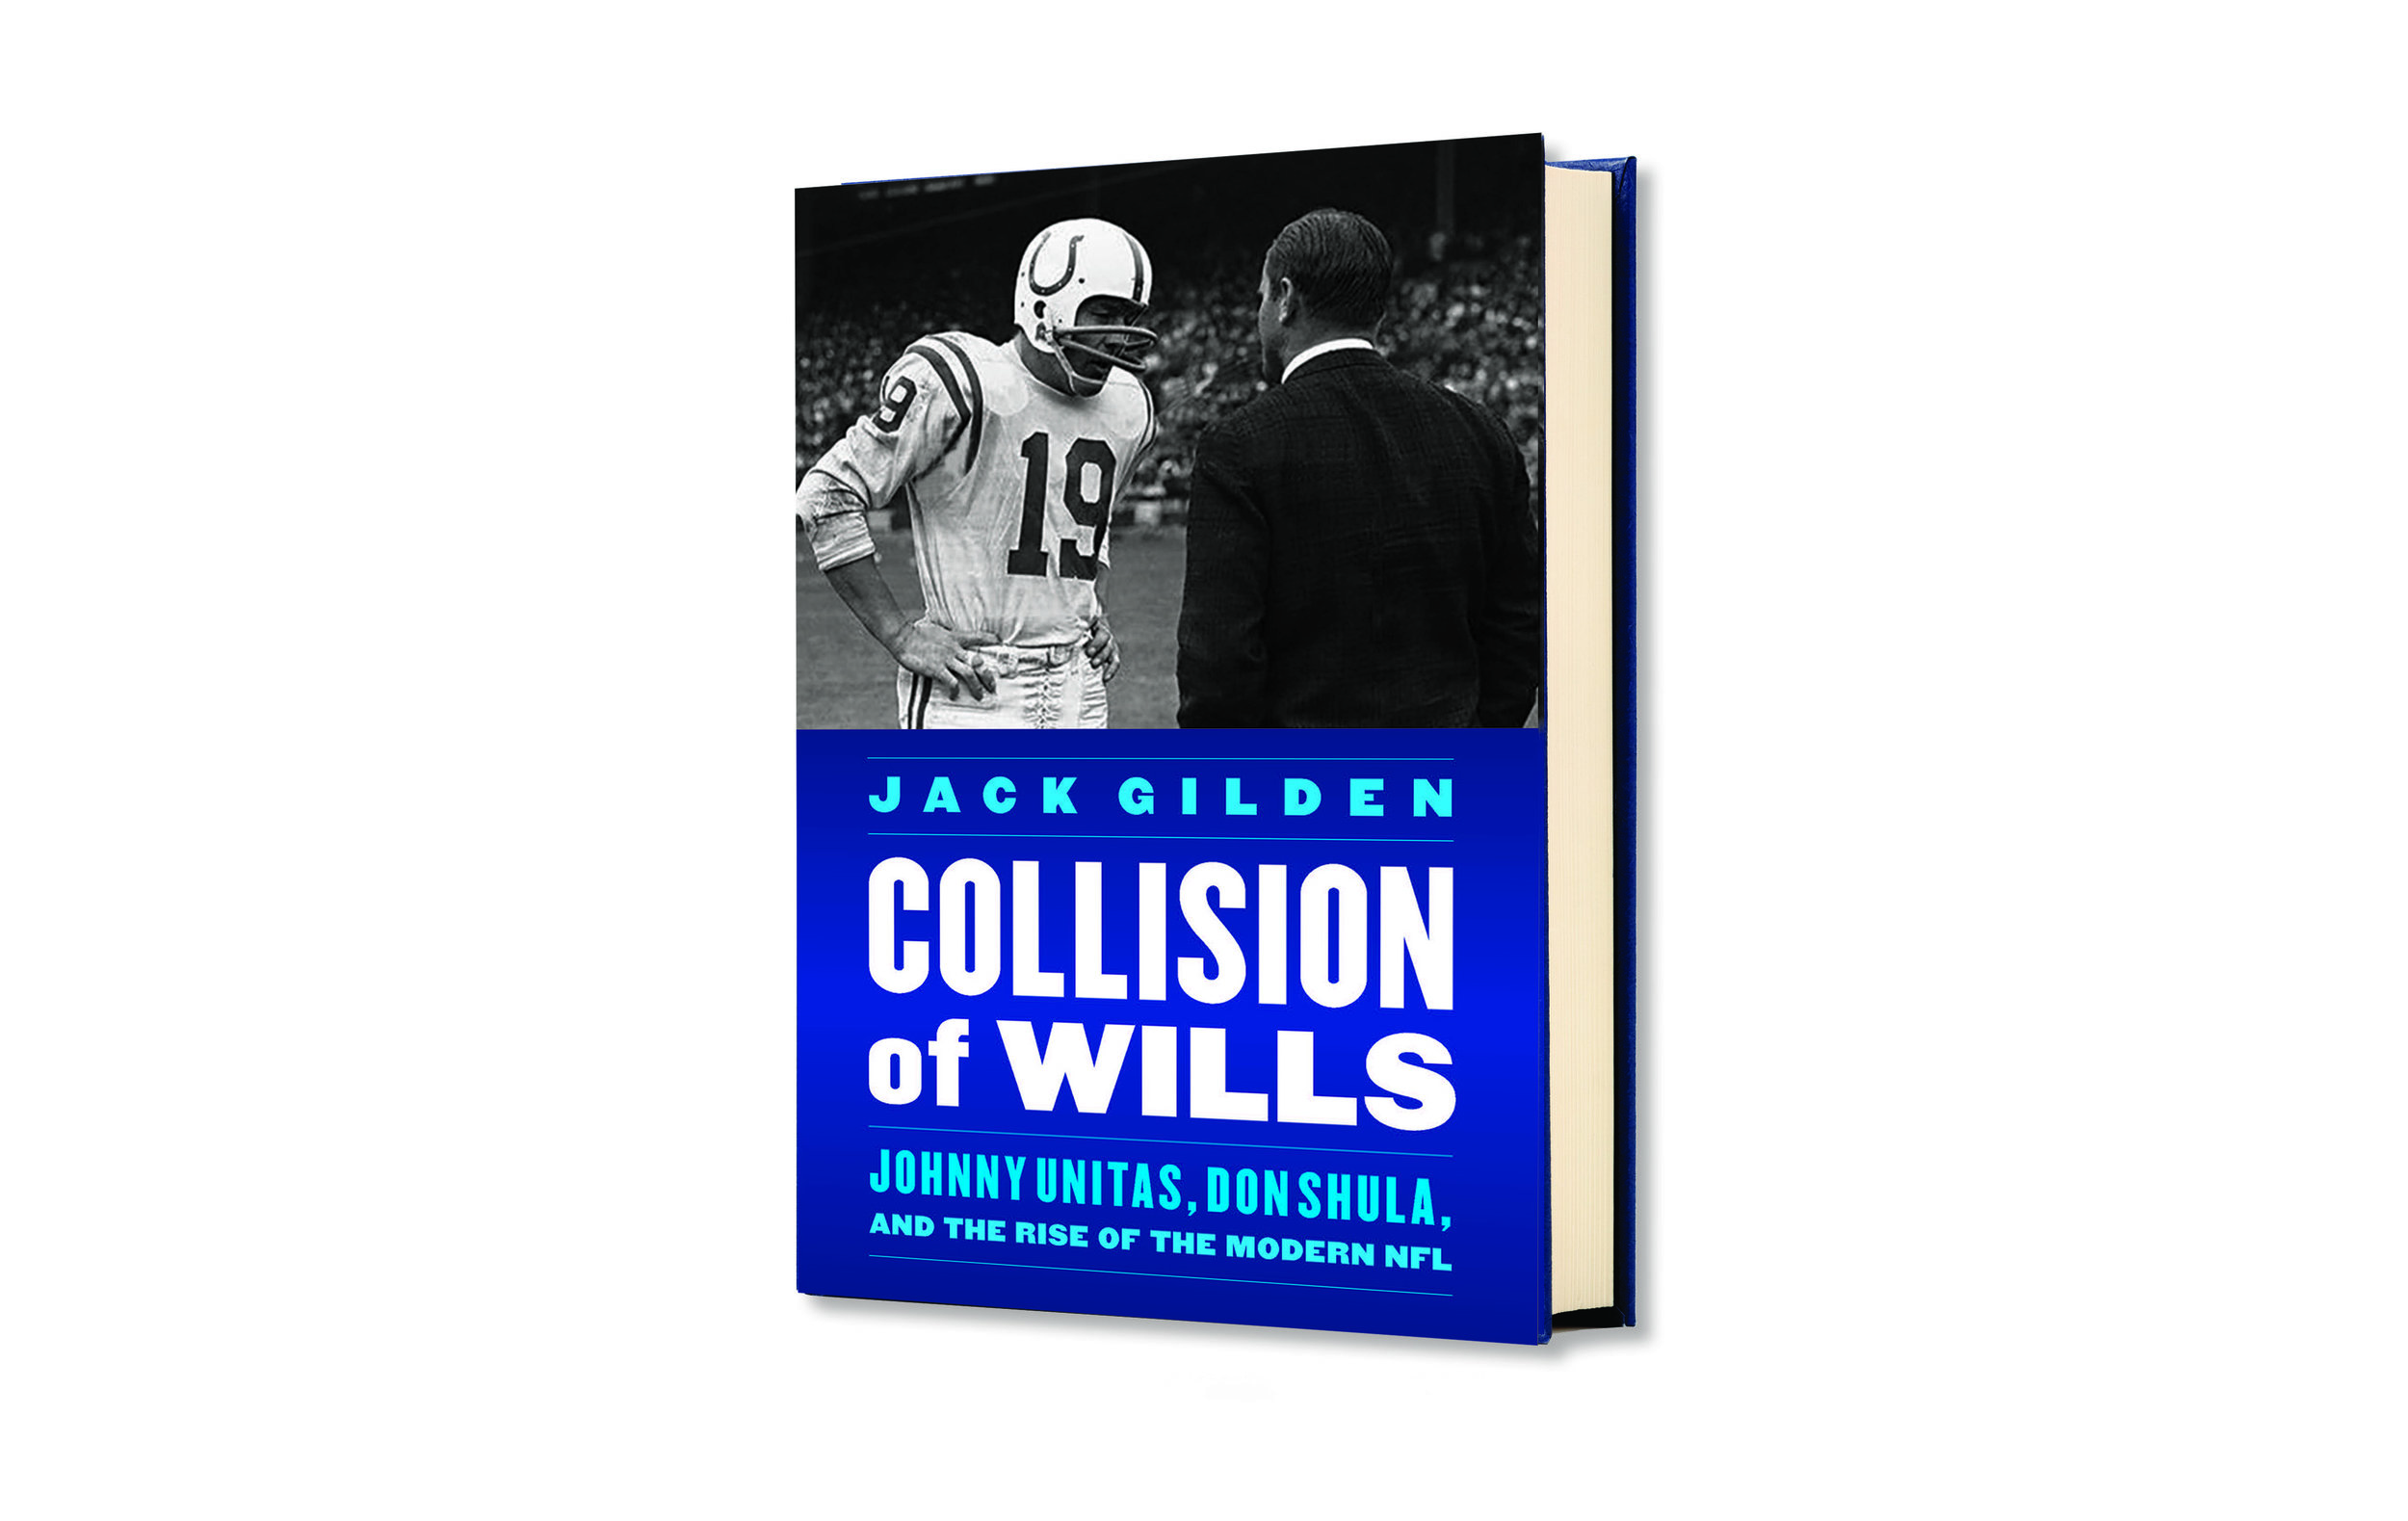 """Praise ForCollision of Wills - """"With passion for the subject, extensive reporting, and sharp analysis, Jack Gilden brings to life Johnny Unitas, Don Shula, their team, their era, and their city. I thought I knew everything about Baltimore sports after covering them for more than three decades, but Collision of Wills taught me a lot.""""-- John Eisenberg"""